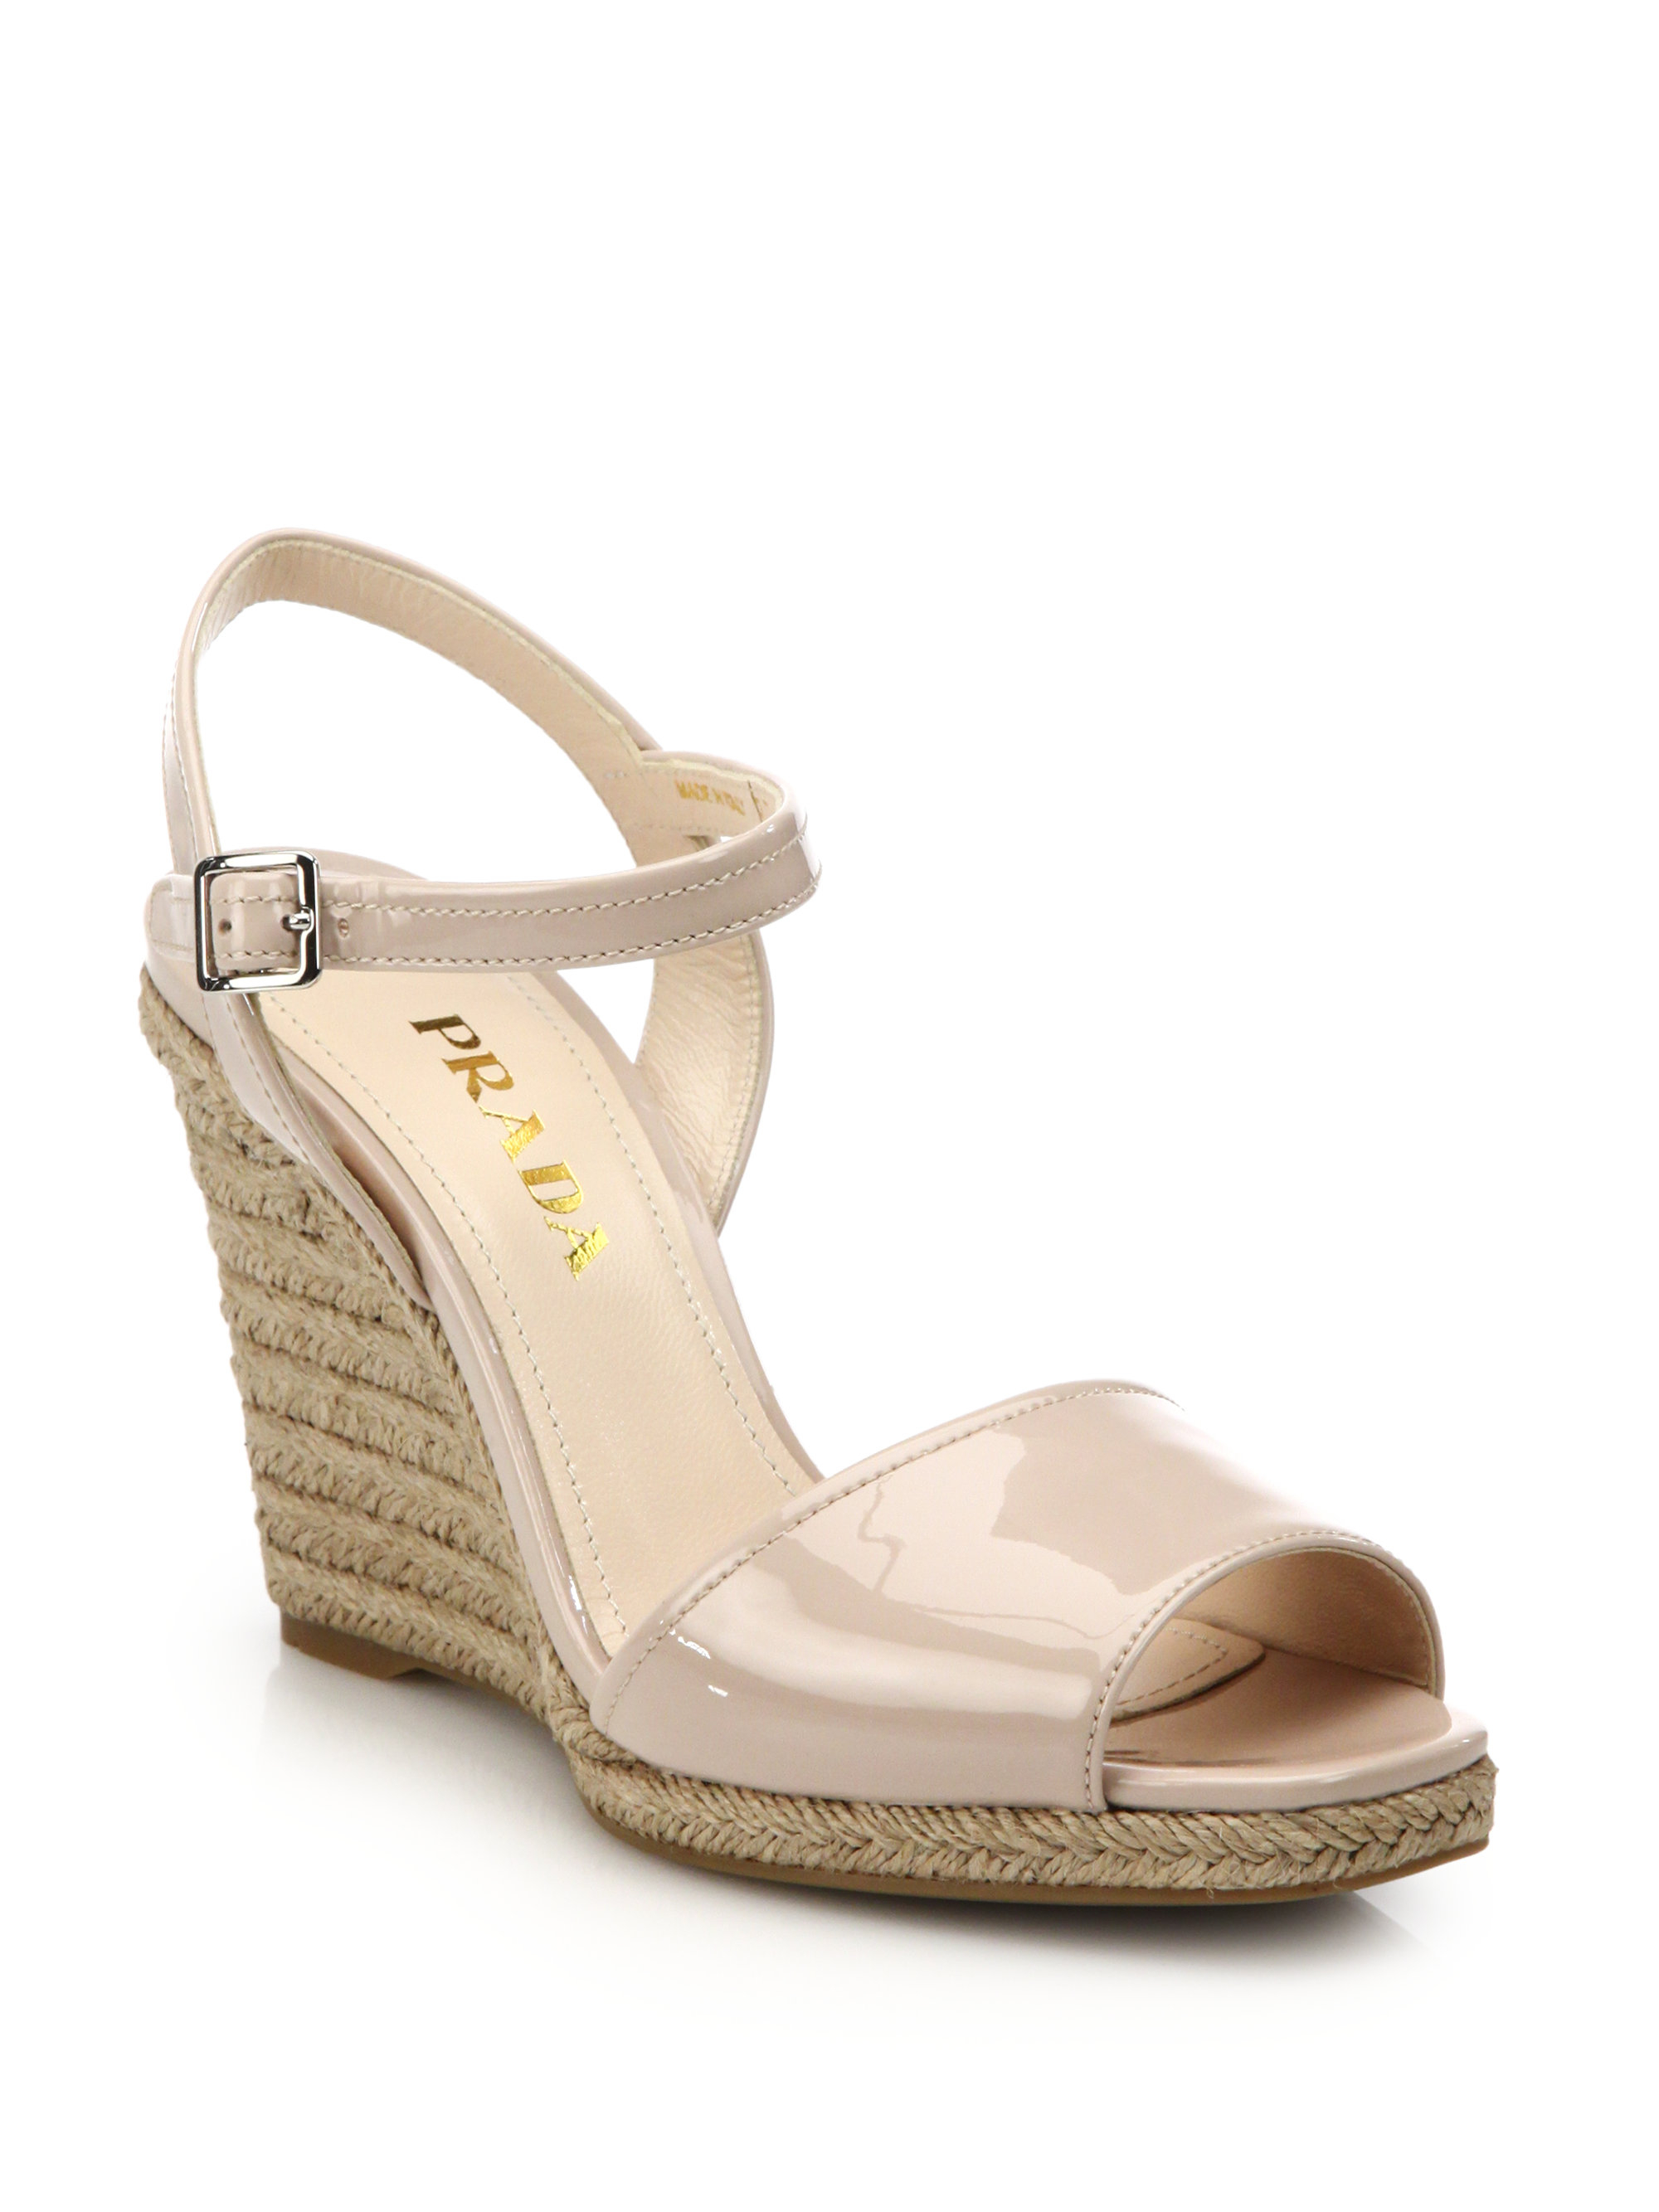 Lyst - Prada Patent Leather Espadrille Wedge Sandals in Natural 1ceaa8ff35